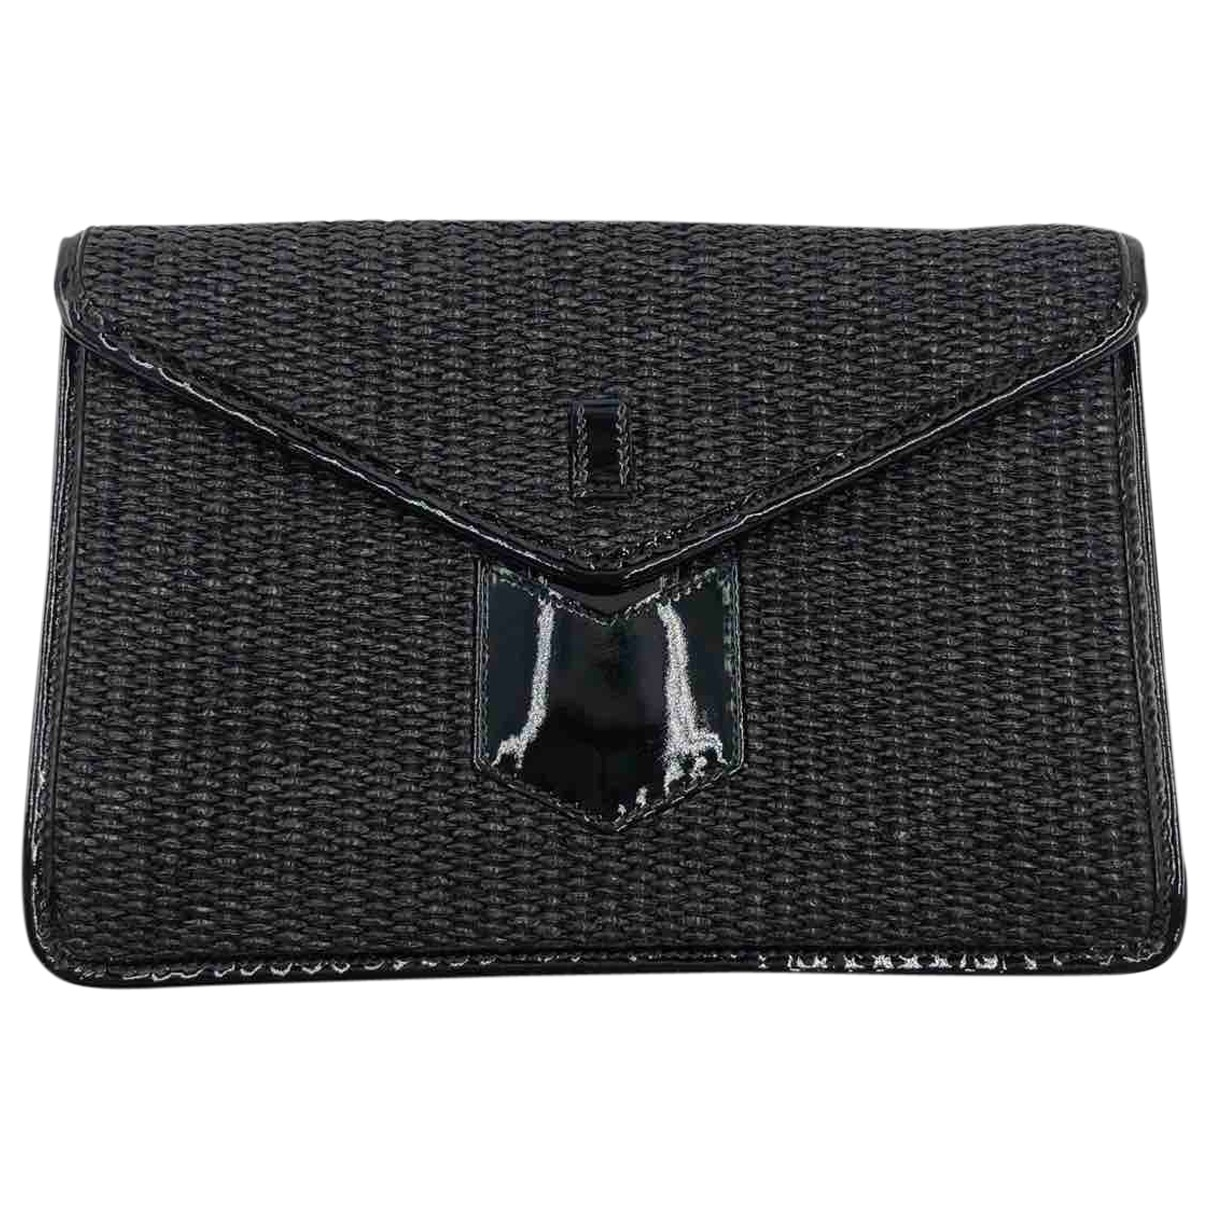 Yves Saint Laurent \N Clutch in  Schwarz Stroh